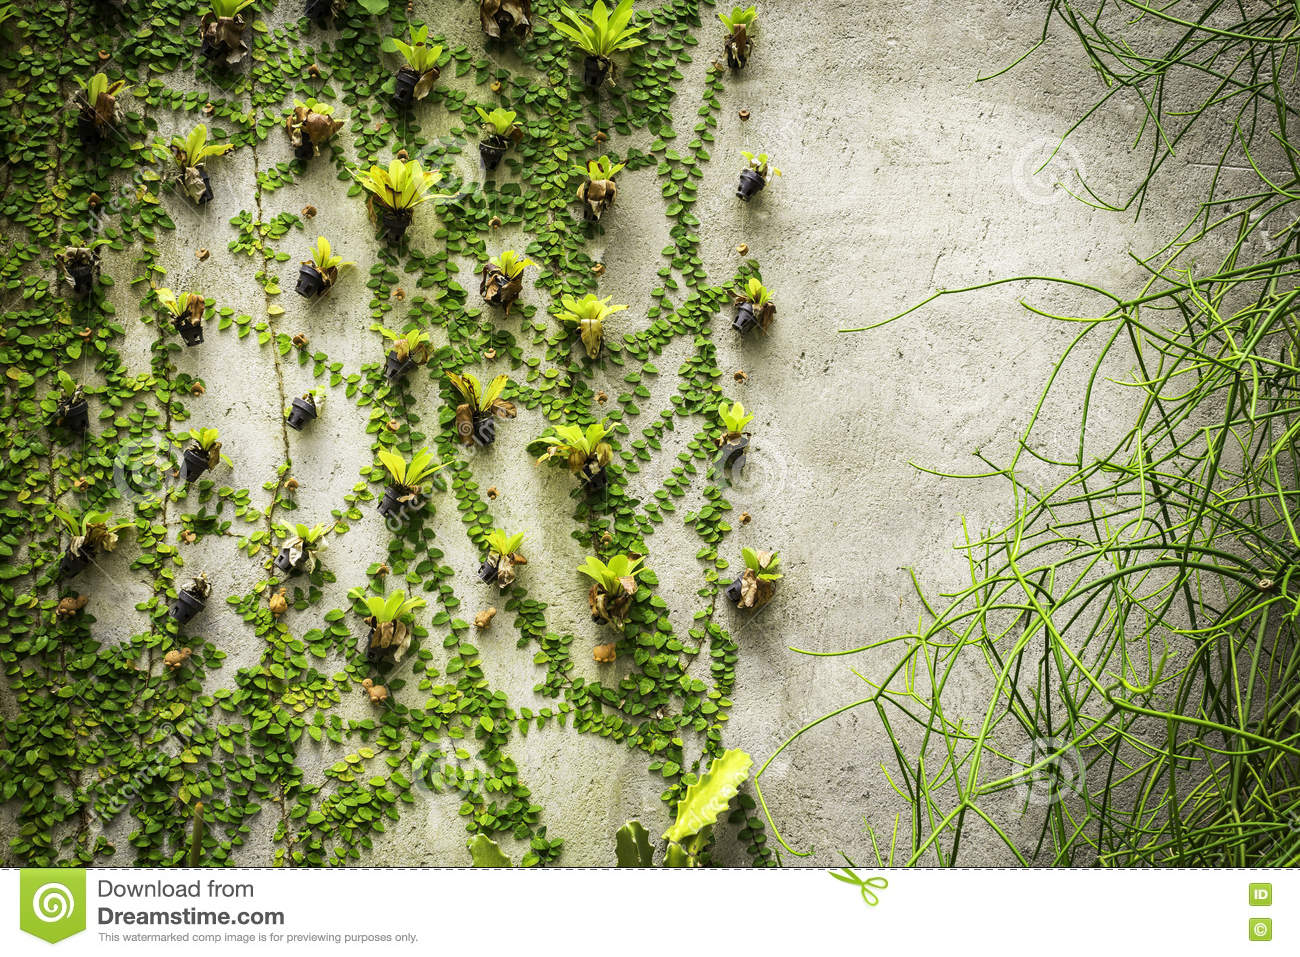 Closed Plants Concrete : Green plants on concrete wall background stock photo